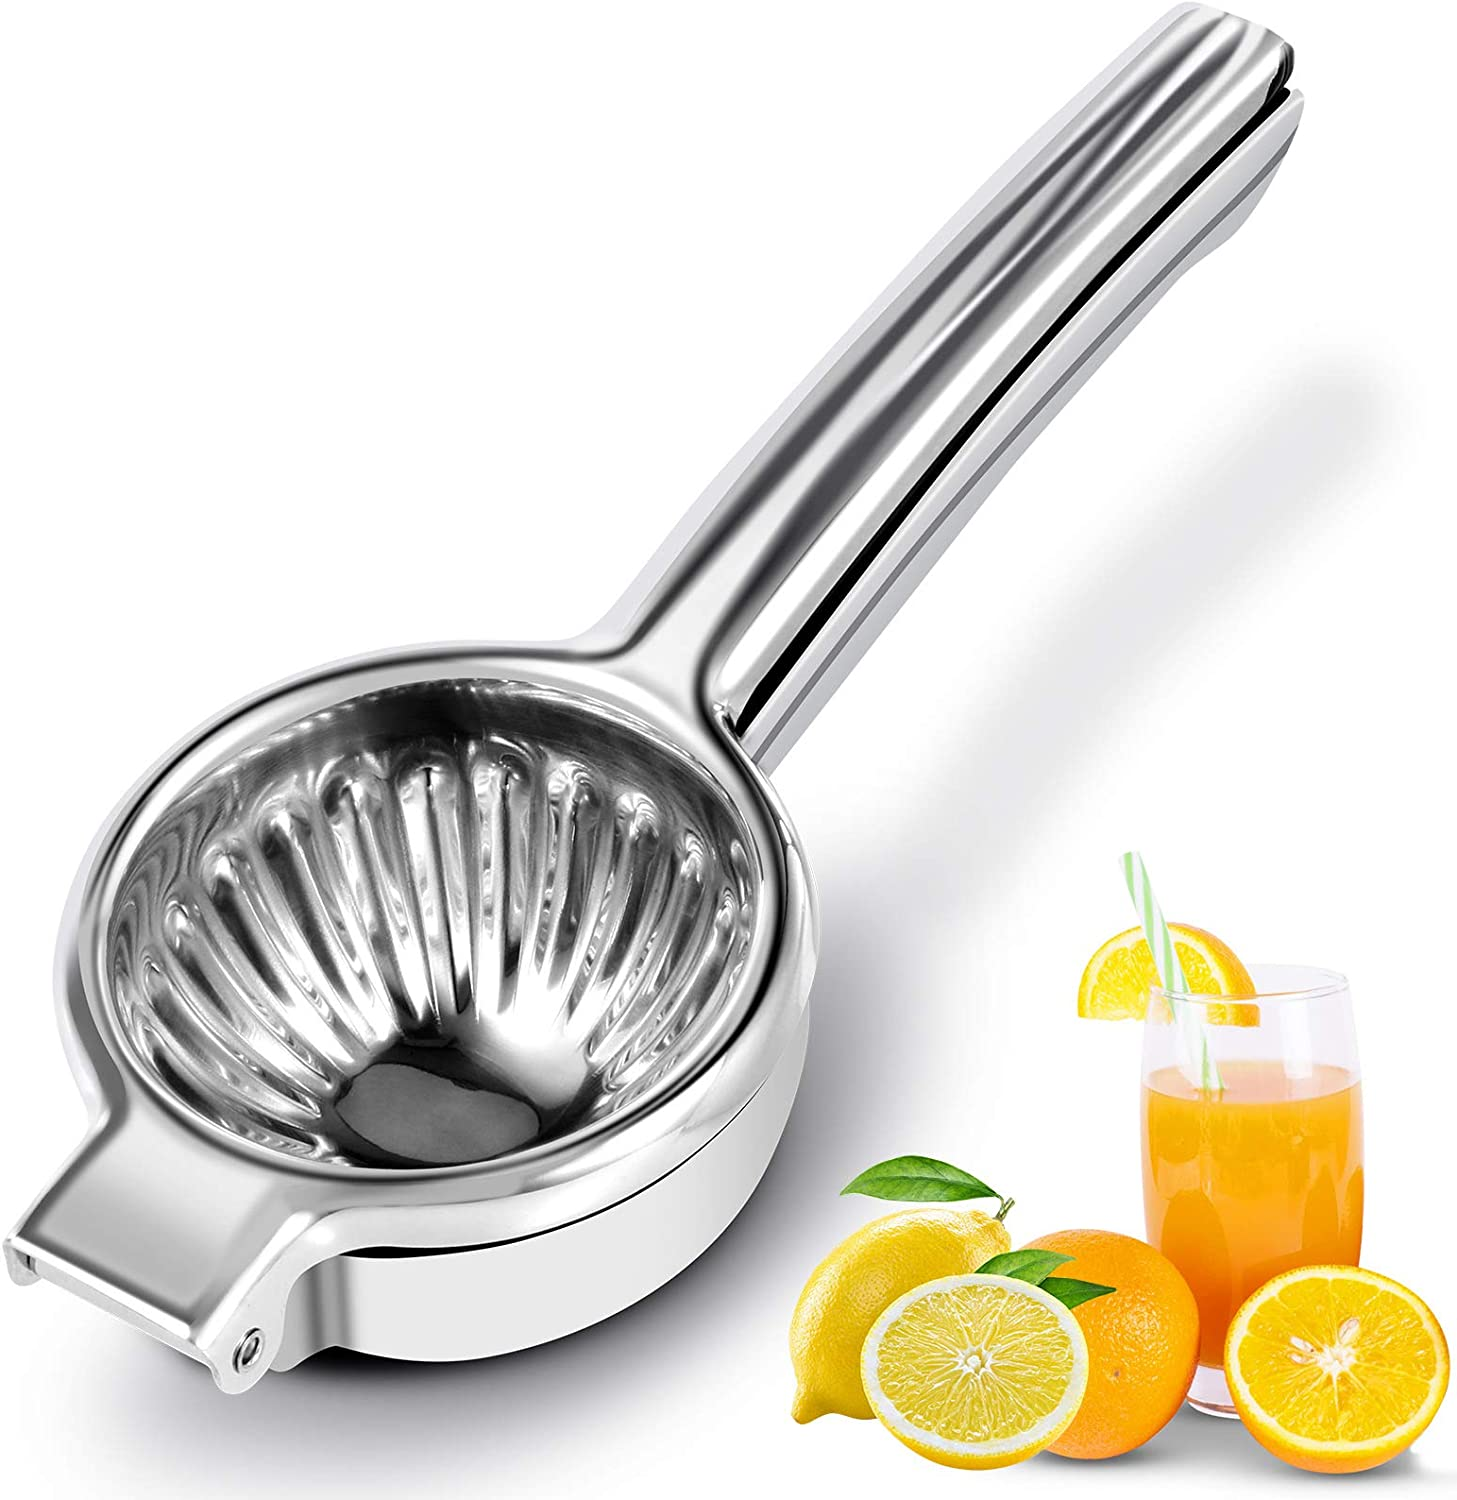 Lemon Squeezer Stainless Steel -2021 Upgraded Manual Citrus Press Juicer- Extra High Quality Solid Squeezer Bowl With 3.35Inch, Fruit Juicer& Citrus Press Squeezer, for Small Oranges, Limes& Lemons